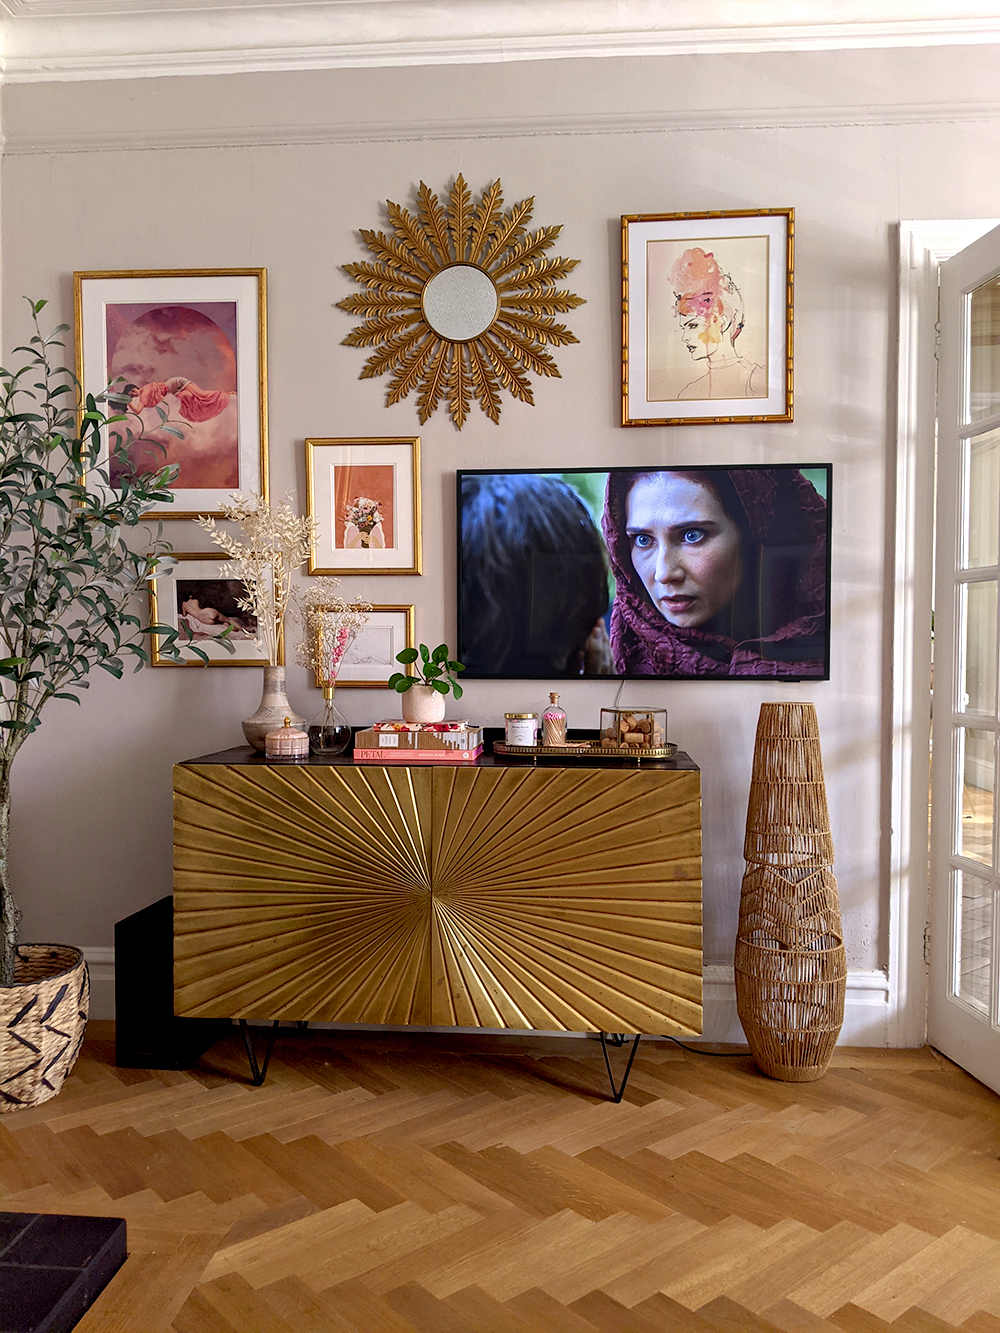 Samsung Frame TV 2020 picture quality